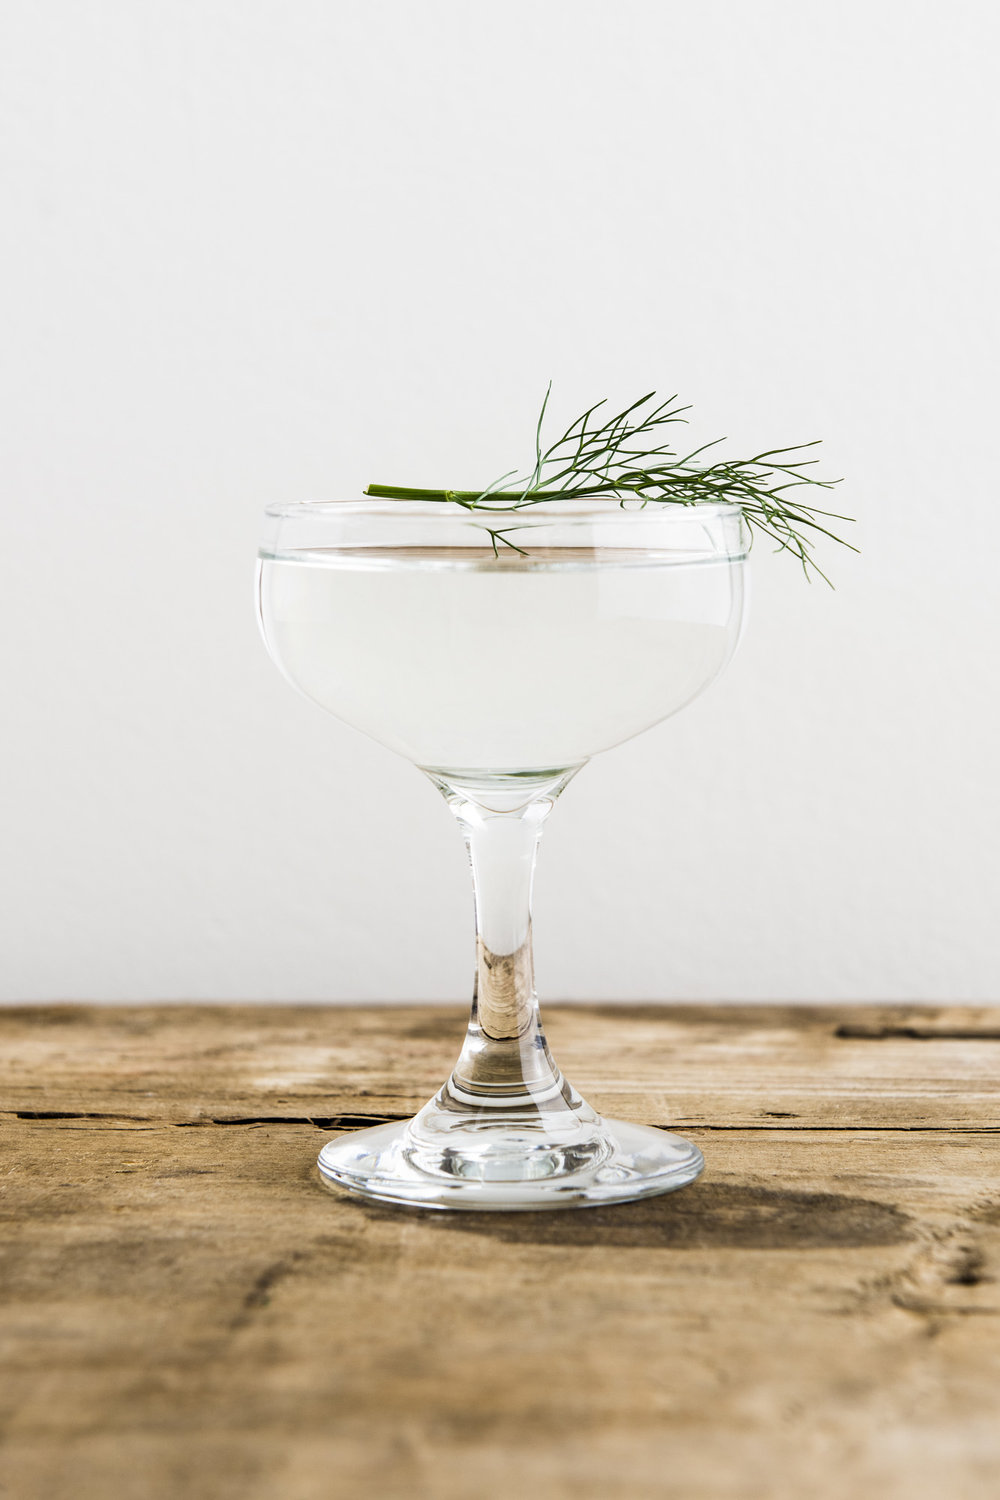 BIG SUR   2 1/2 oz Vodka  1/2 oz Chareau  2 Dashes of Absinthe  Stir ingredients over ice. Strain into coupe and garnish with fennel.